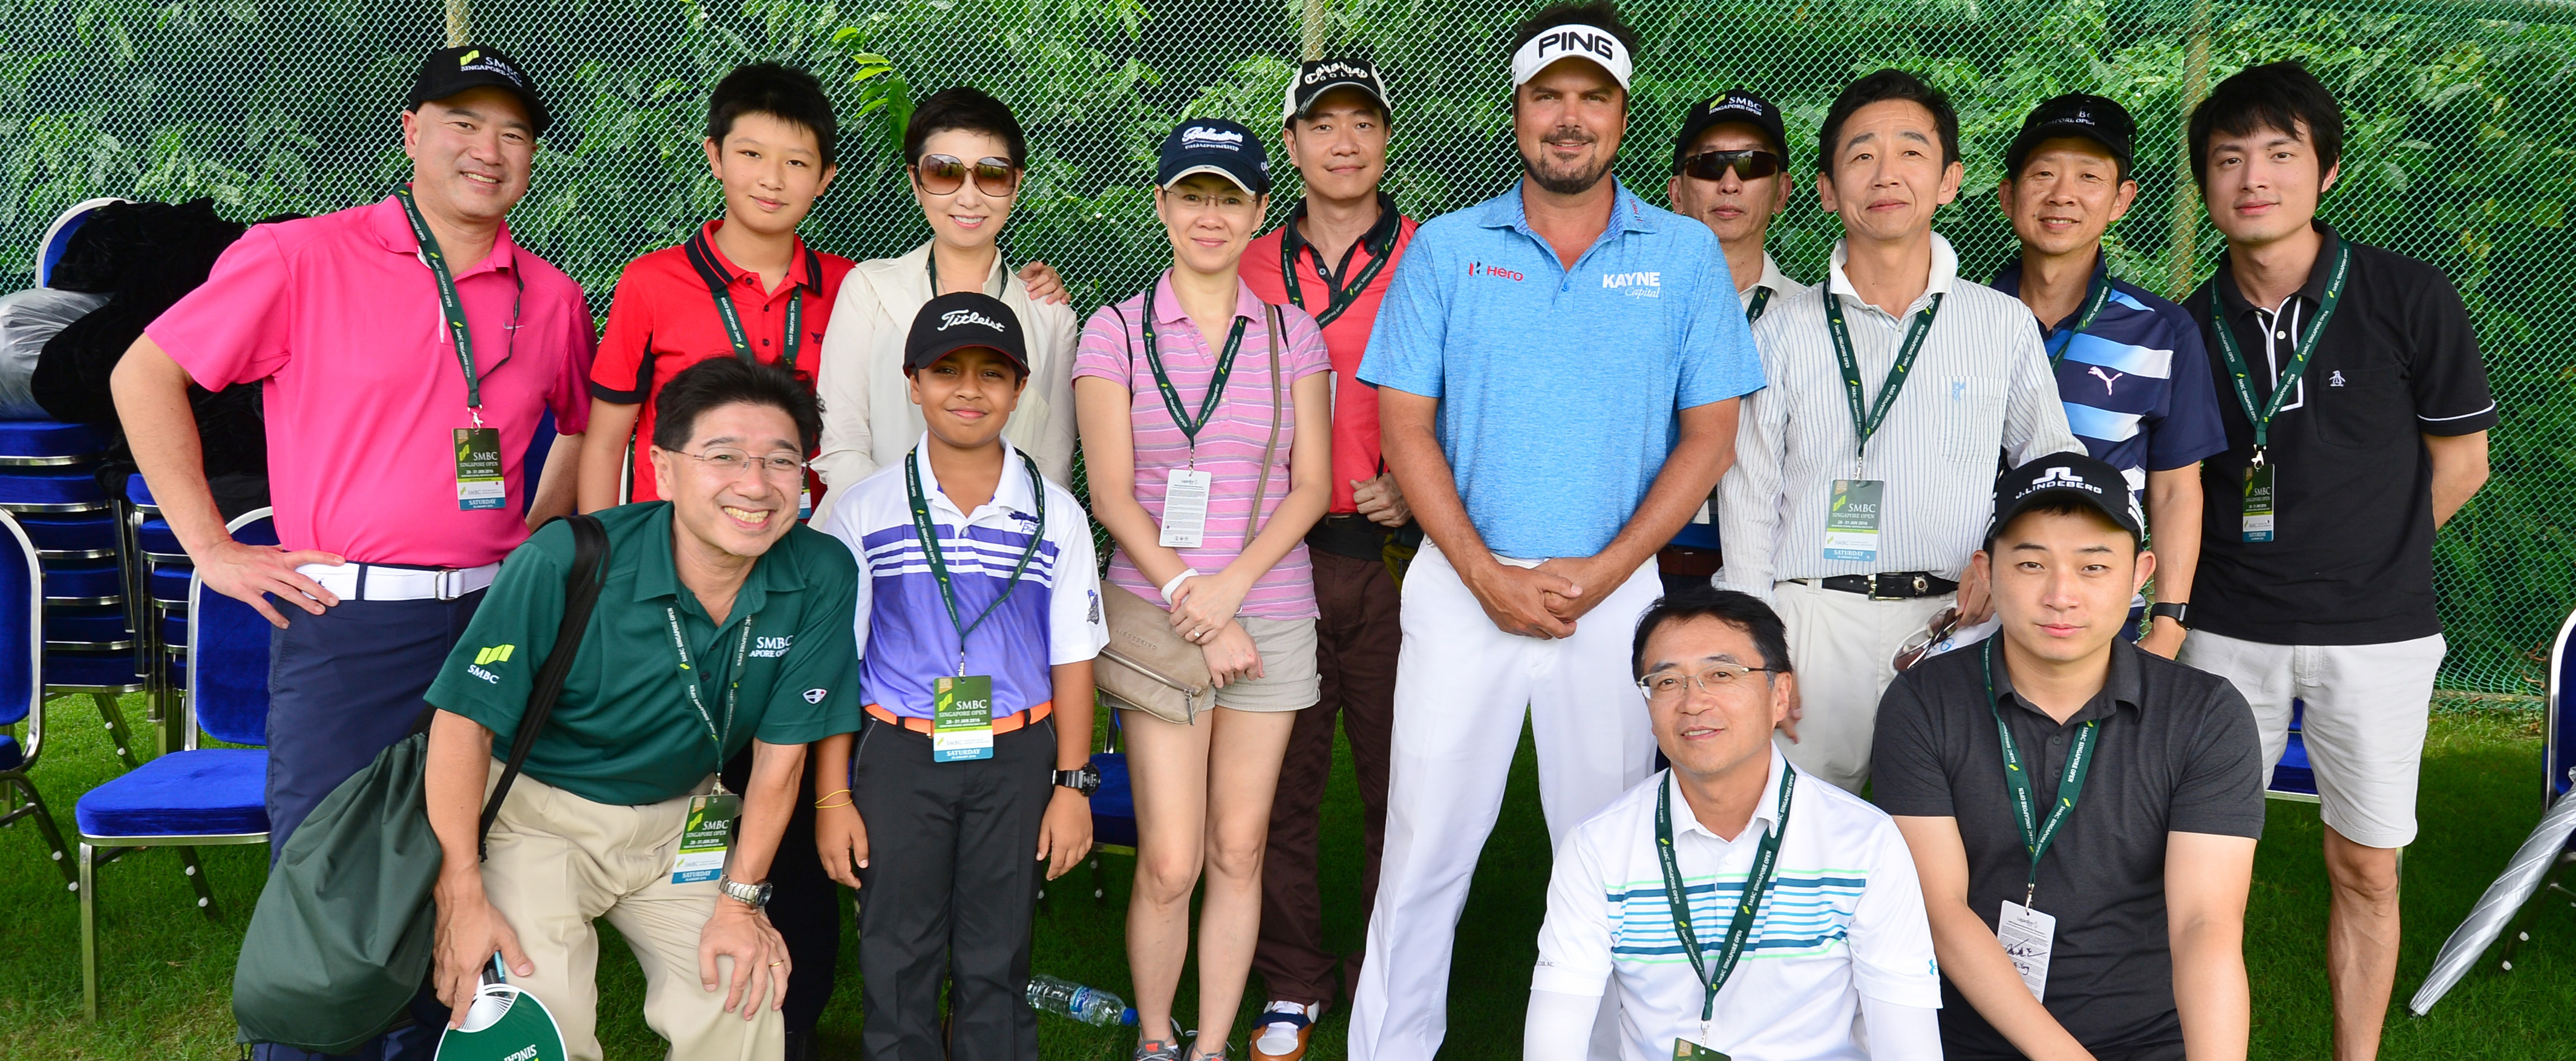 Daniel conducted a golf clinic at this year's SMBC Singapore Open